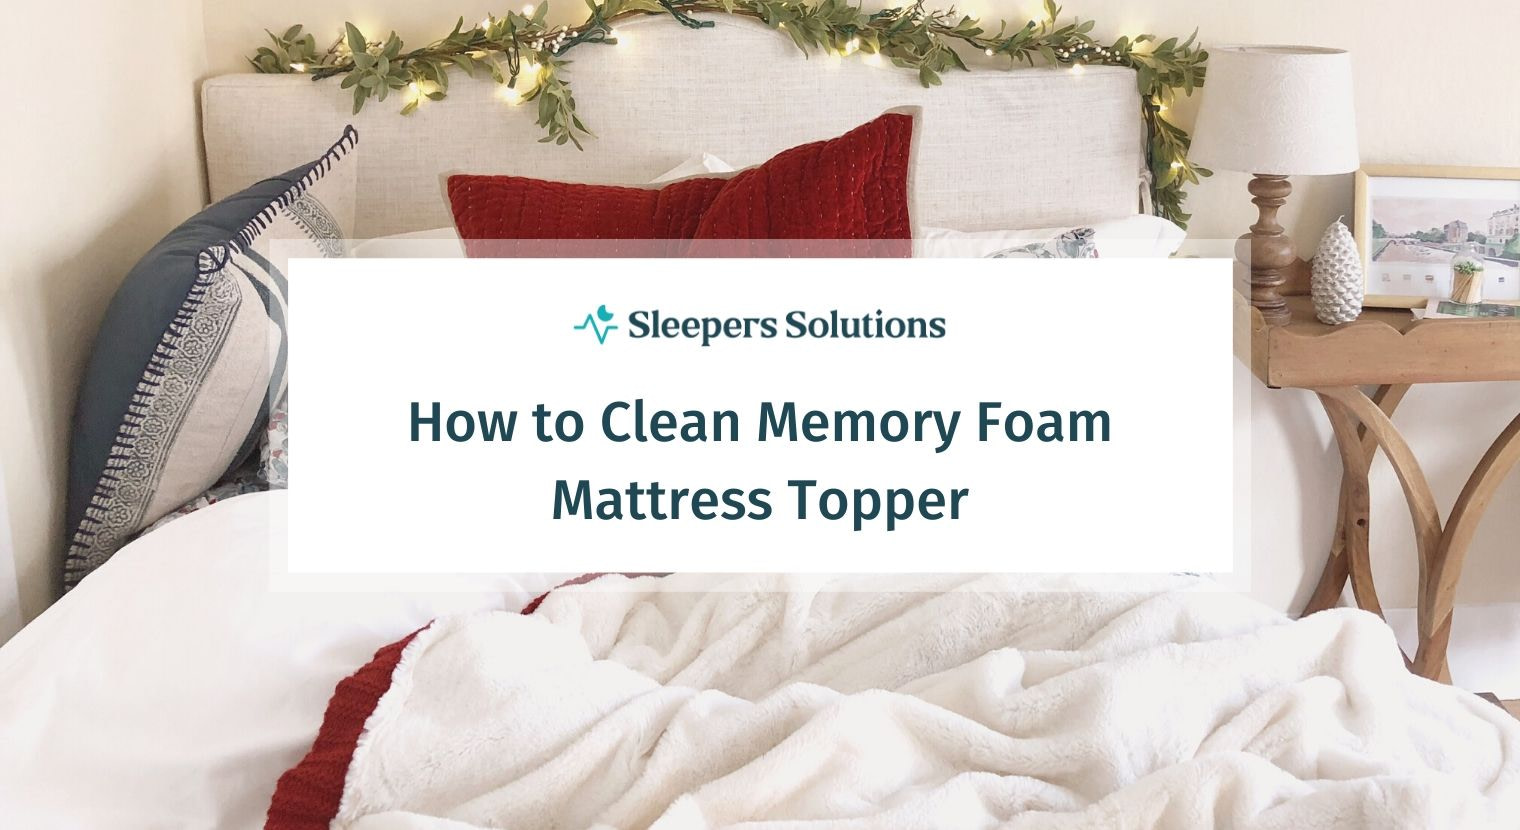 How to Clean Memory Foam Mattress Topper